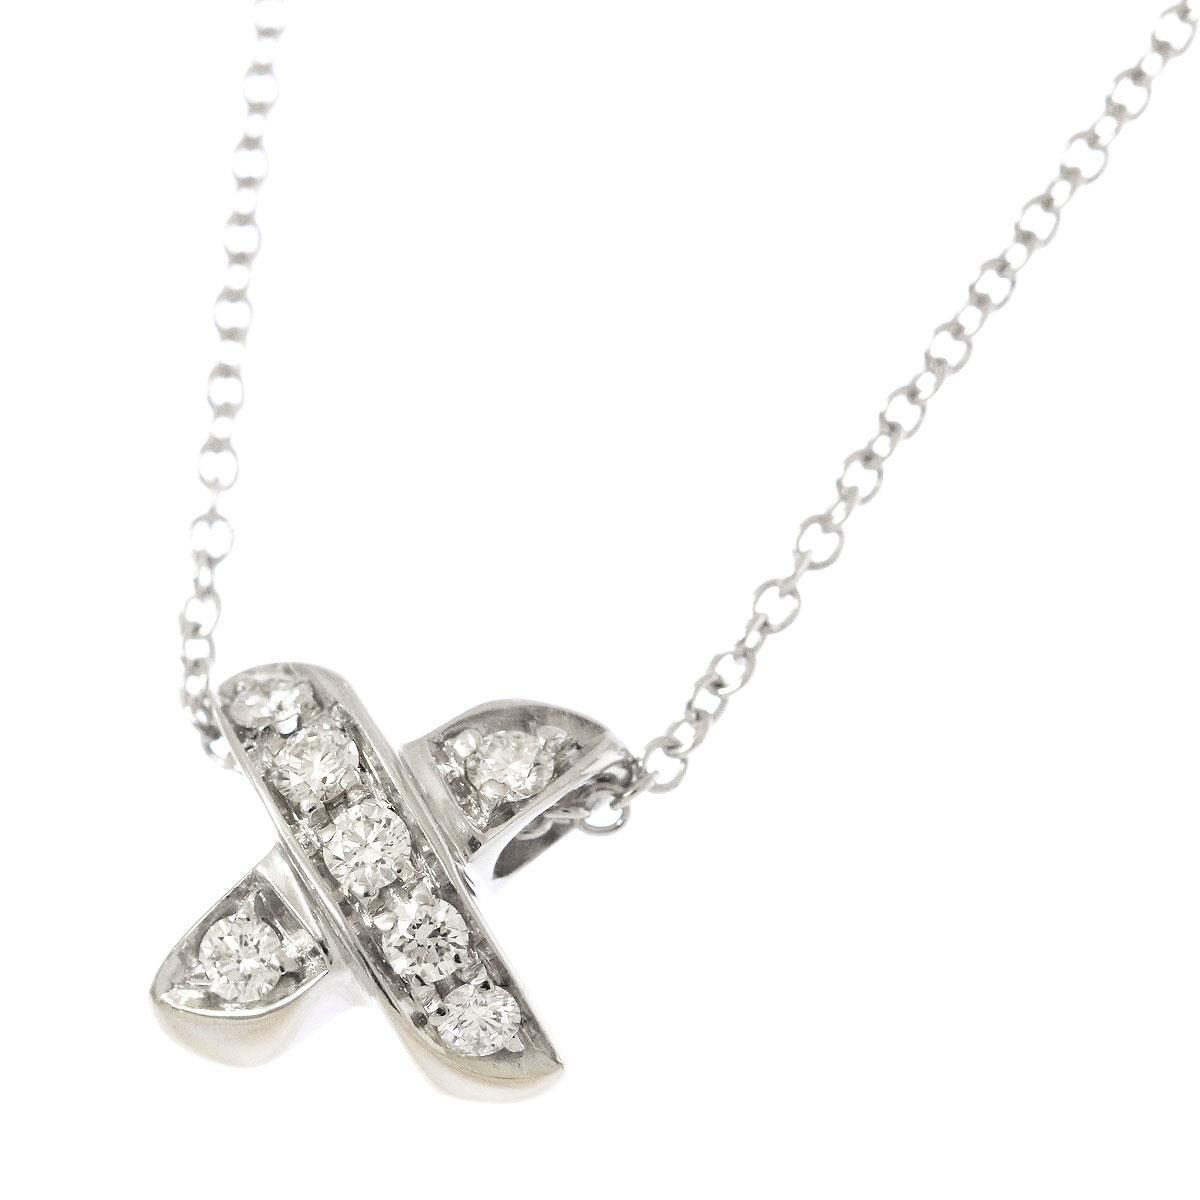 a8c672f0a 18K White Gold Diamond Cross Necklace | Tiffany & Co. | Buy at TrueFacet